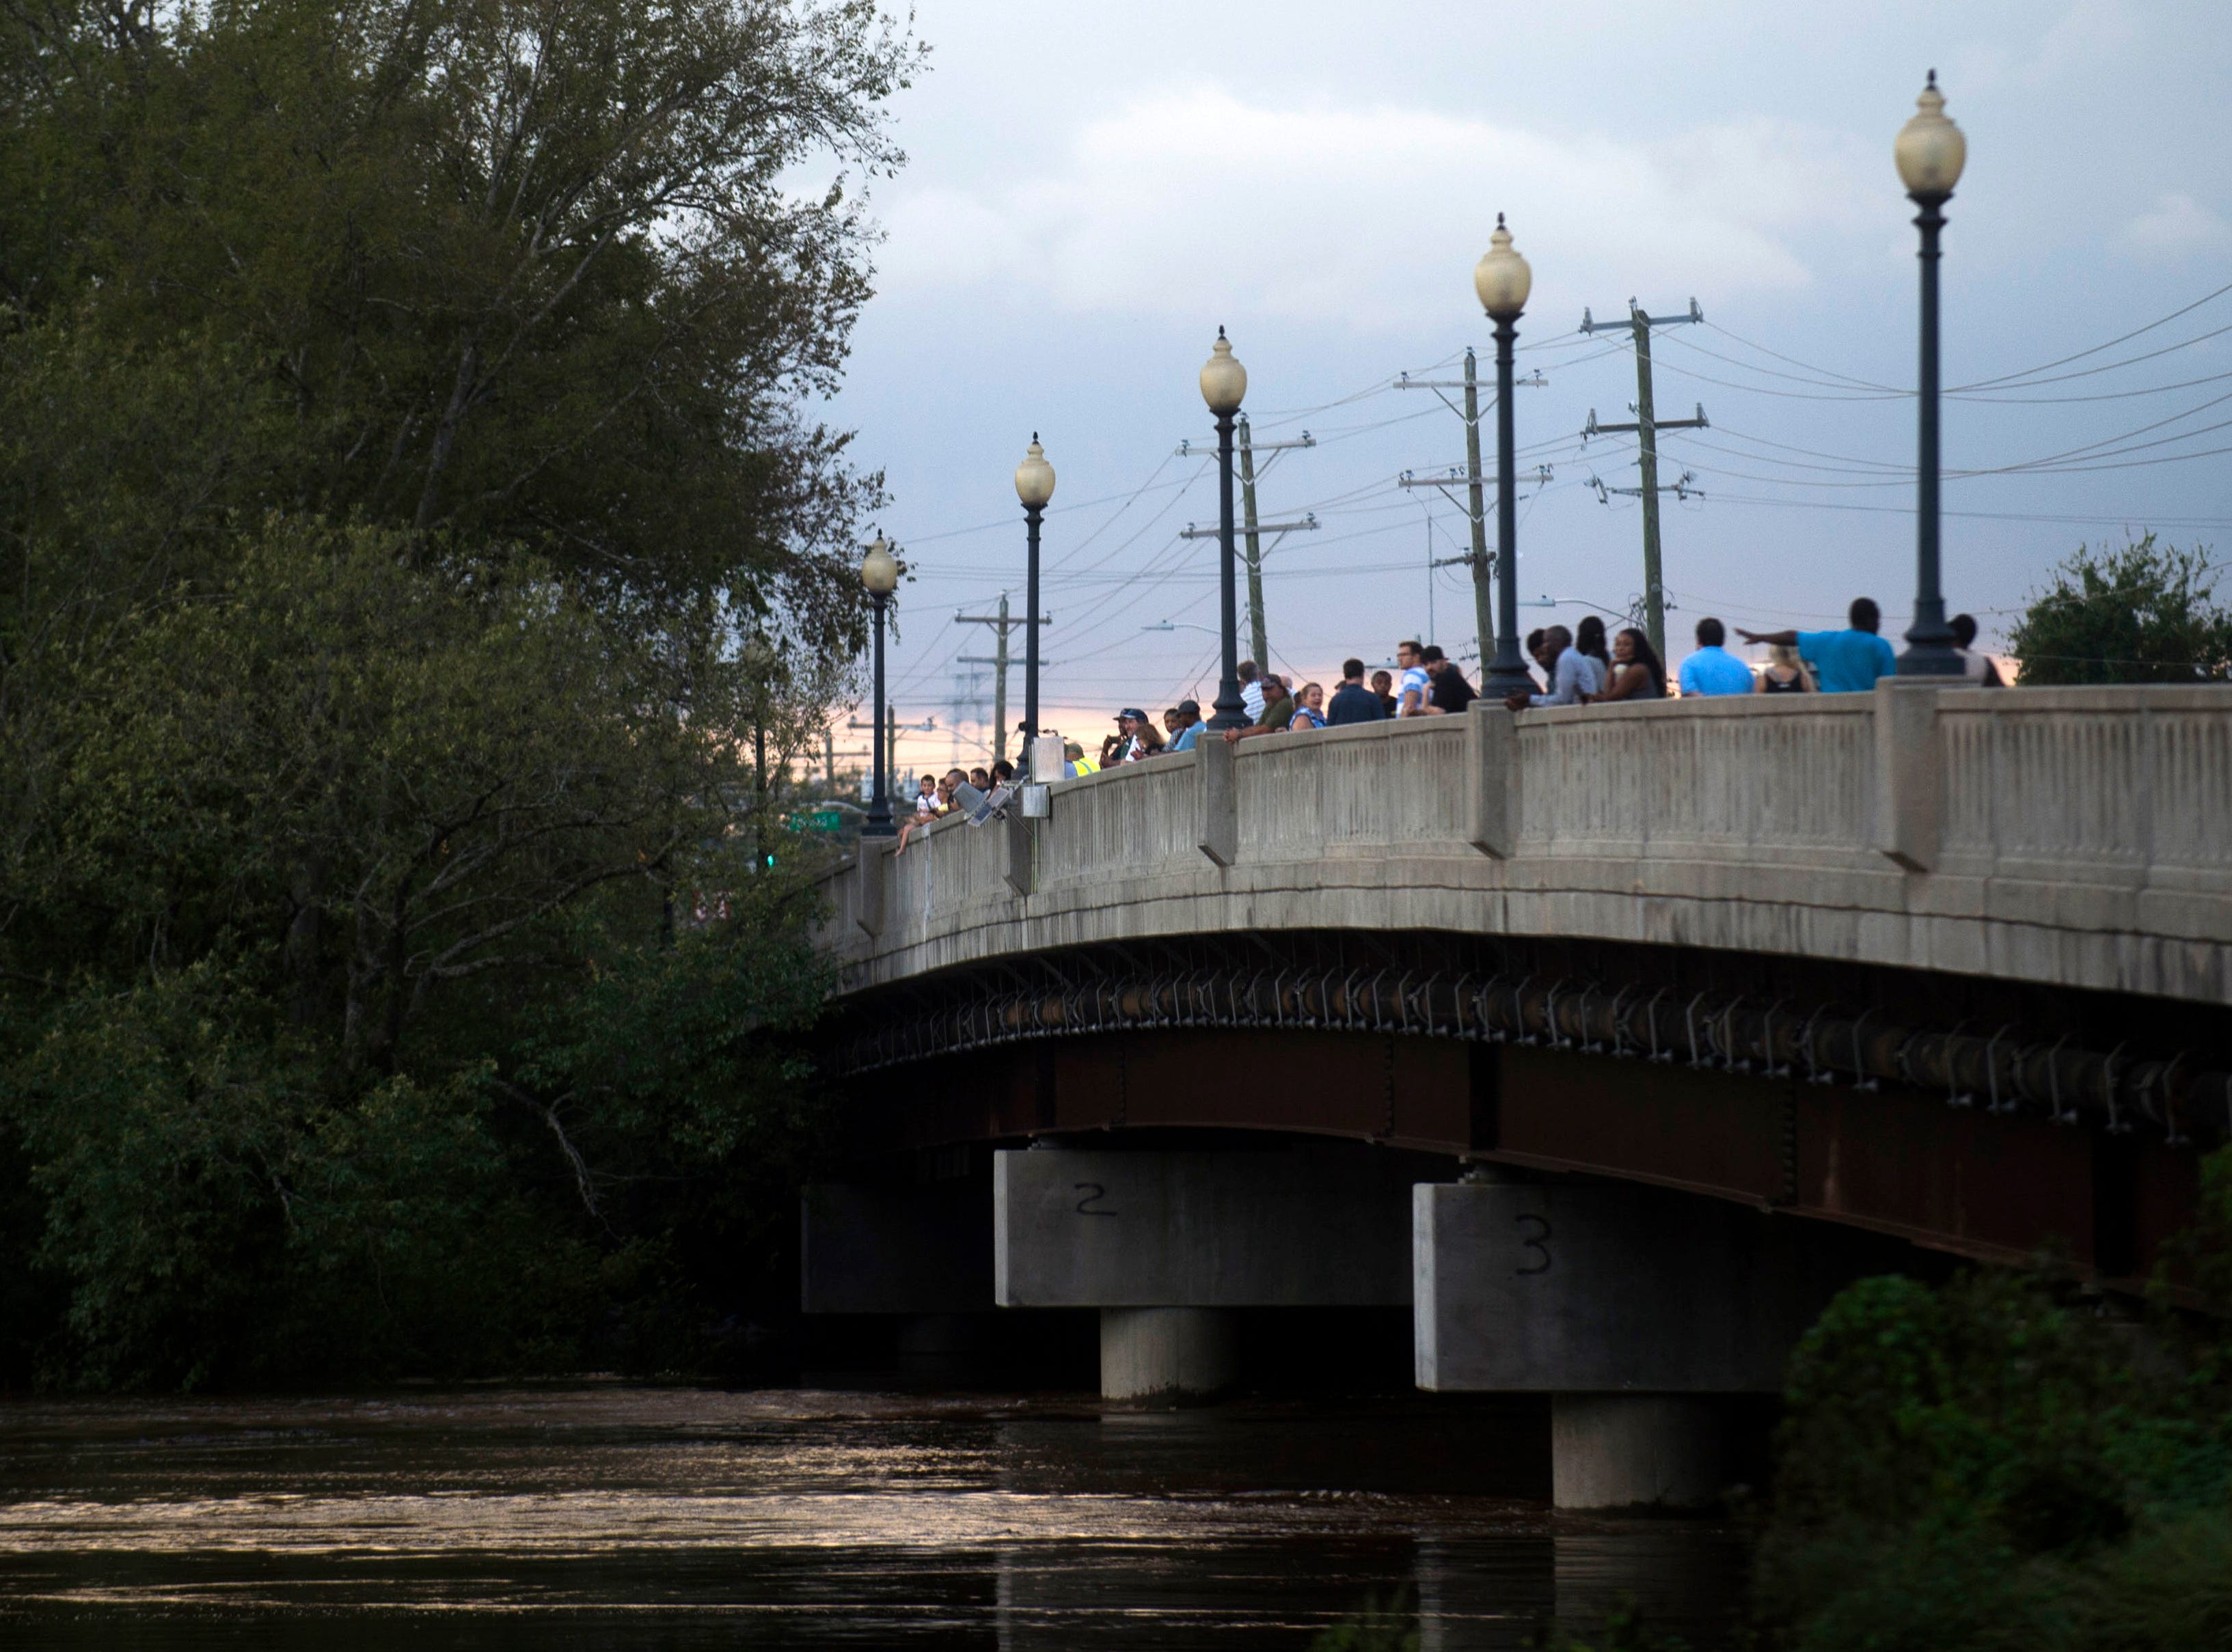 Pedestrians look out over the Cape Fear River in Fayetteville, N.C., Monday, Sept. 17, 2018. The flood stage for the Cape Fear River is 35 feet, and after Florence the river stands at over 50 feet. It is predicted to peak at 61.8 feet according to the National Weather Service.